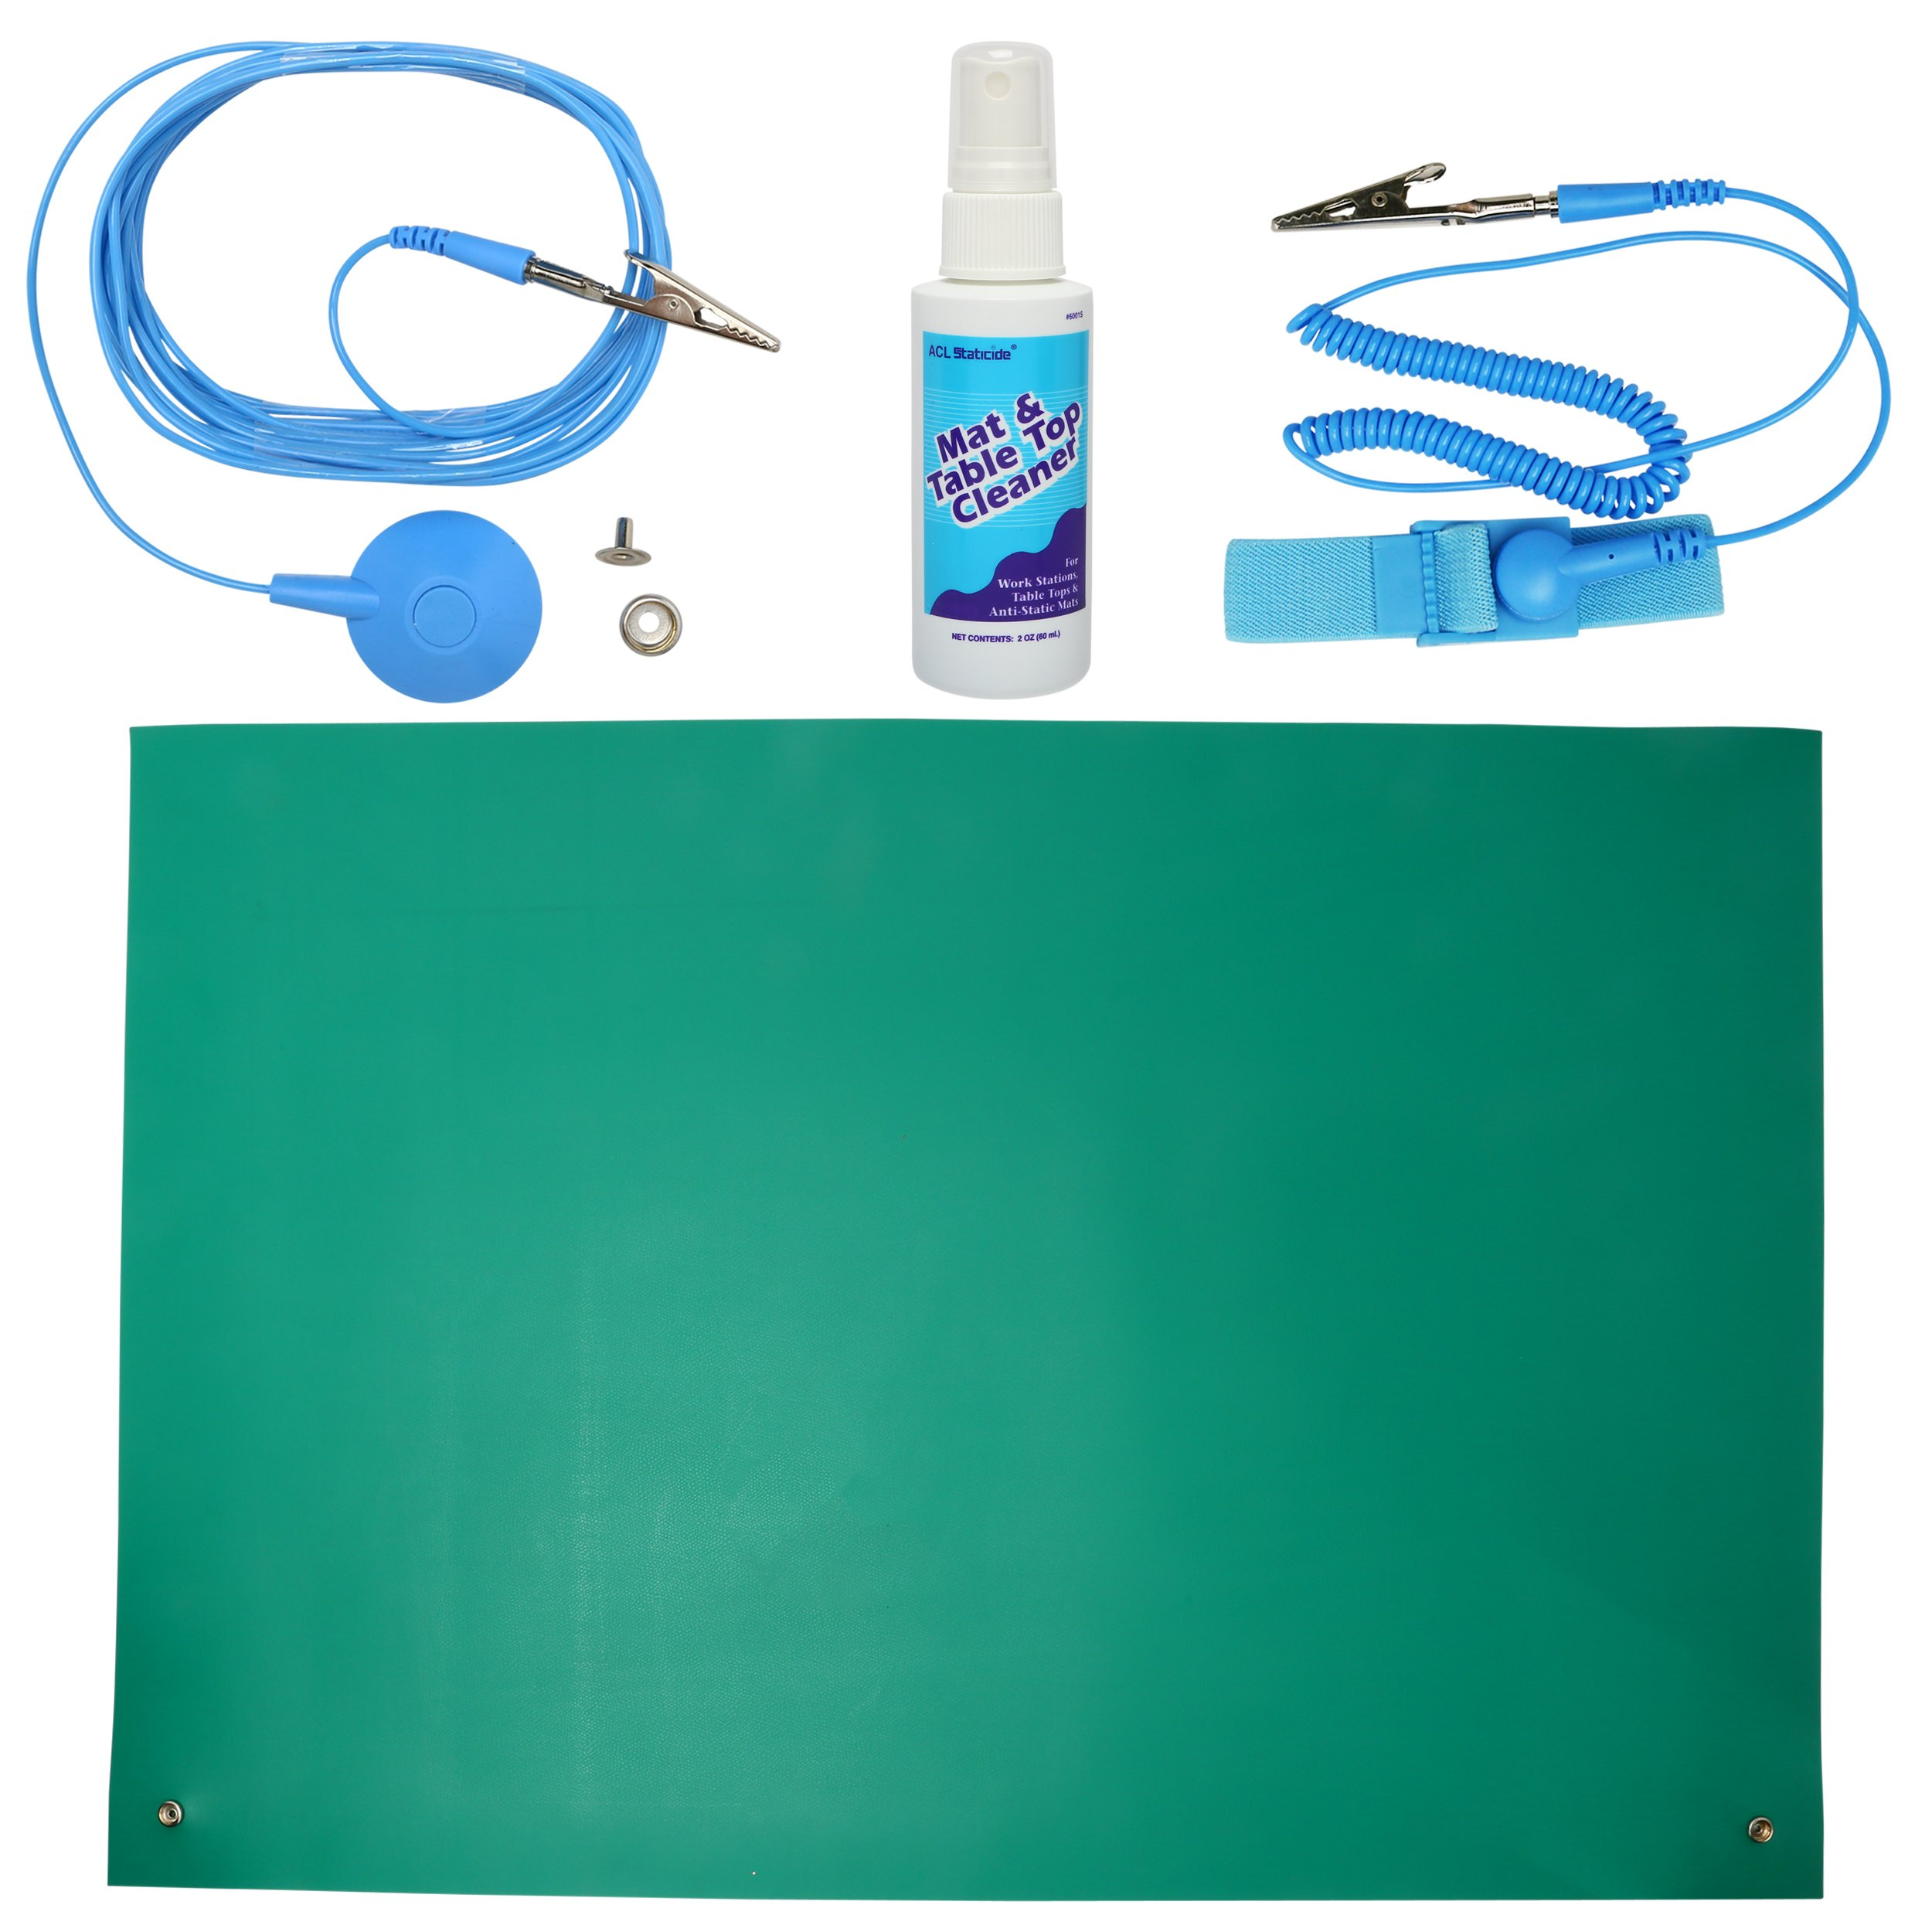 ESD High Temperature Mat Kit | 16'' x 24'' | Emerald Green | with (1) ESD Wrist Strap, (1) ESD Grounding Cord, (1) Bottle of Mat Cleaner